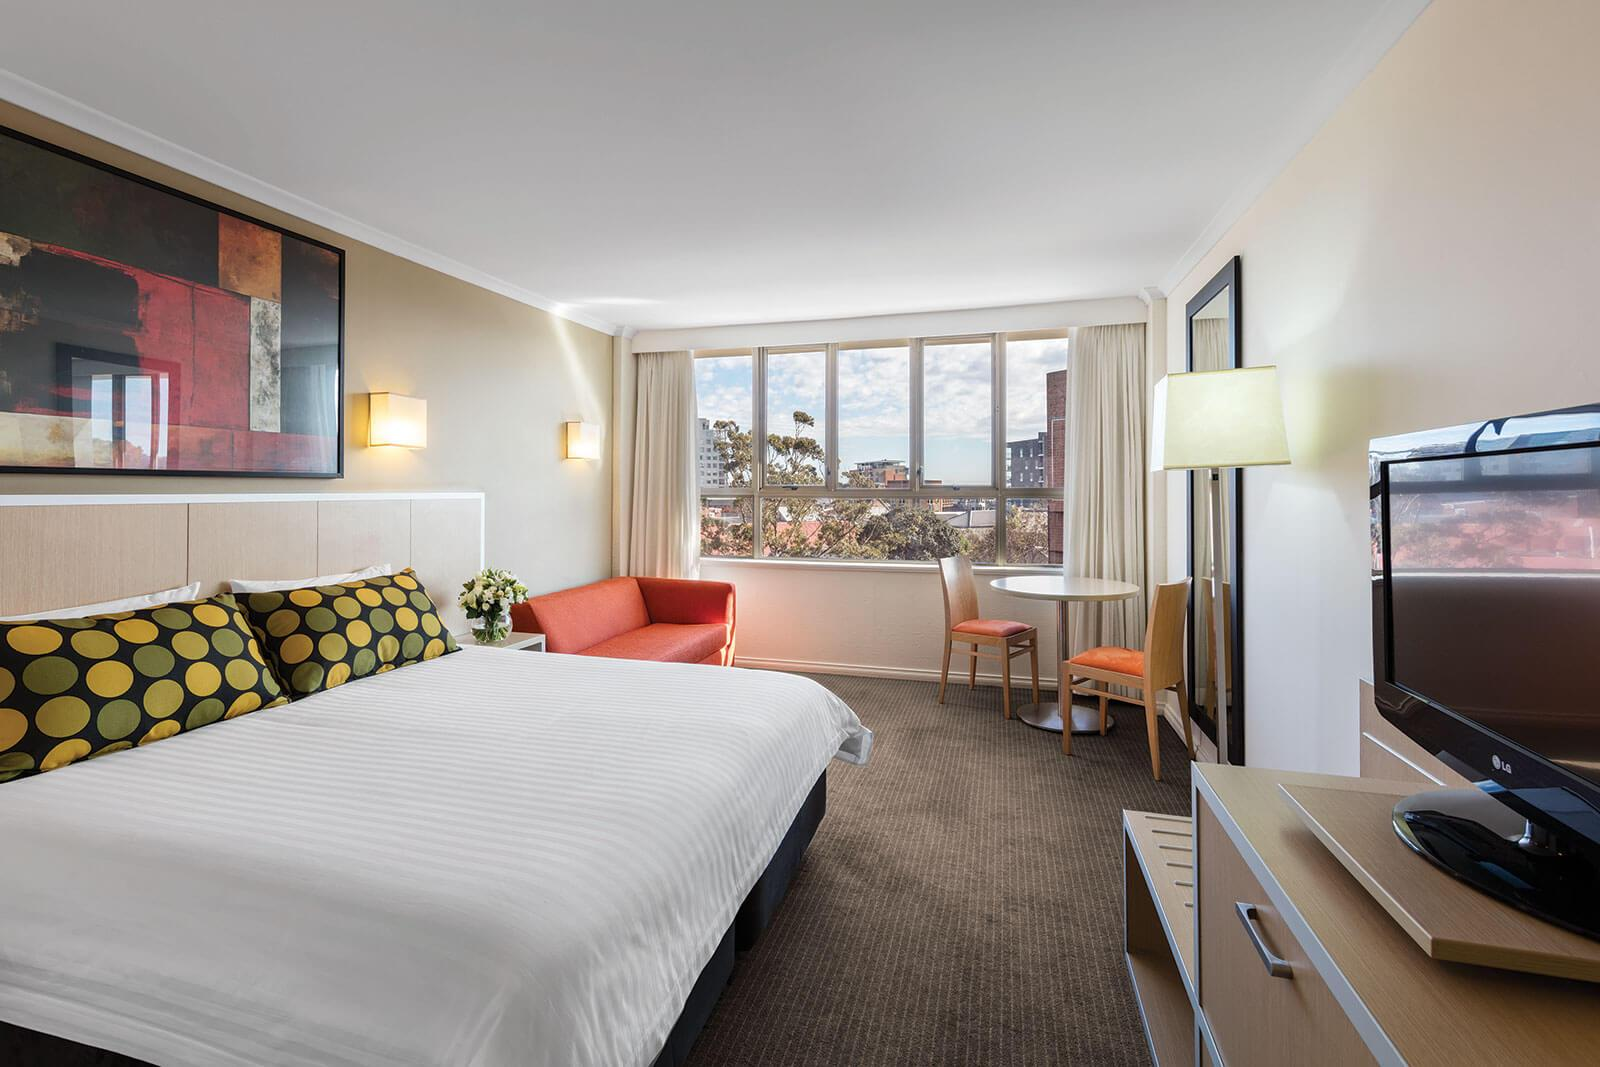 Package Inclusions: - Package includes returns airfares with FlyPelican and 2 nights accommodation in the Travelodge Newcastle.Located right in the heart of the Newcastle CBD you'll be staying at Travelodge, close to Marketown Shopping Centre, Maritime Centre, Darby St Precinct, Hunter St Mall, Newcastle Art Gallery, Newcastle Museum, Entertainment centre, Nobbys Beach and Hunter Stadium.At Travelodge, experience the easy pace of late express check-out at 11am as well as the convenience of Dry Cleaning (fees apply), Laundry – On-site (coin operated), Wake Up Calls, 100% Non-Smoking Hotel, Safety Deposit Box (in-room) and Luggage Storage Facilities.Prices starting from:$359* pp/twin share ex Ballina/Dubbo$379* pp/twin share ex Sydney$559* pp/twin share ex Canberra★★★★